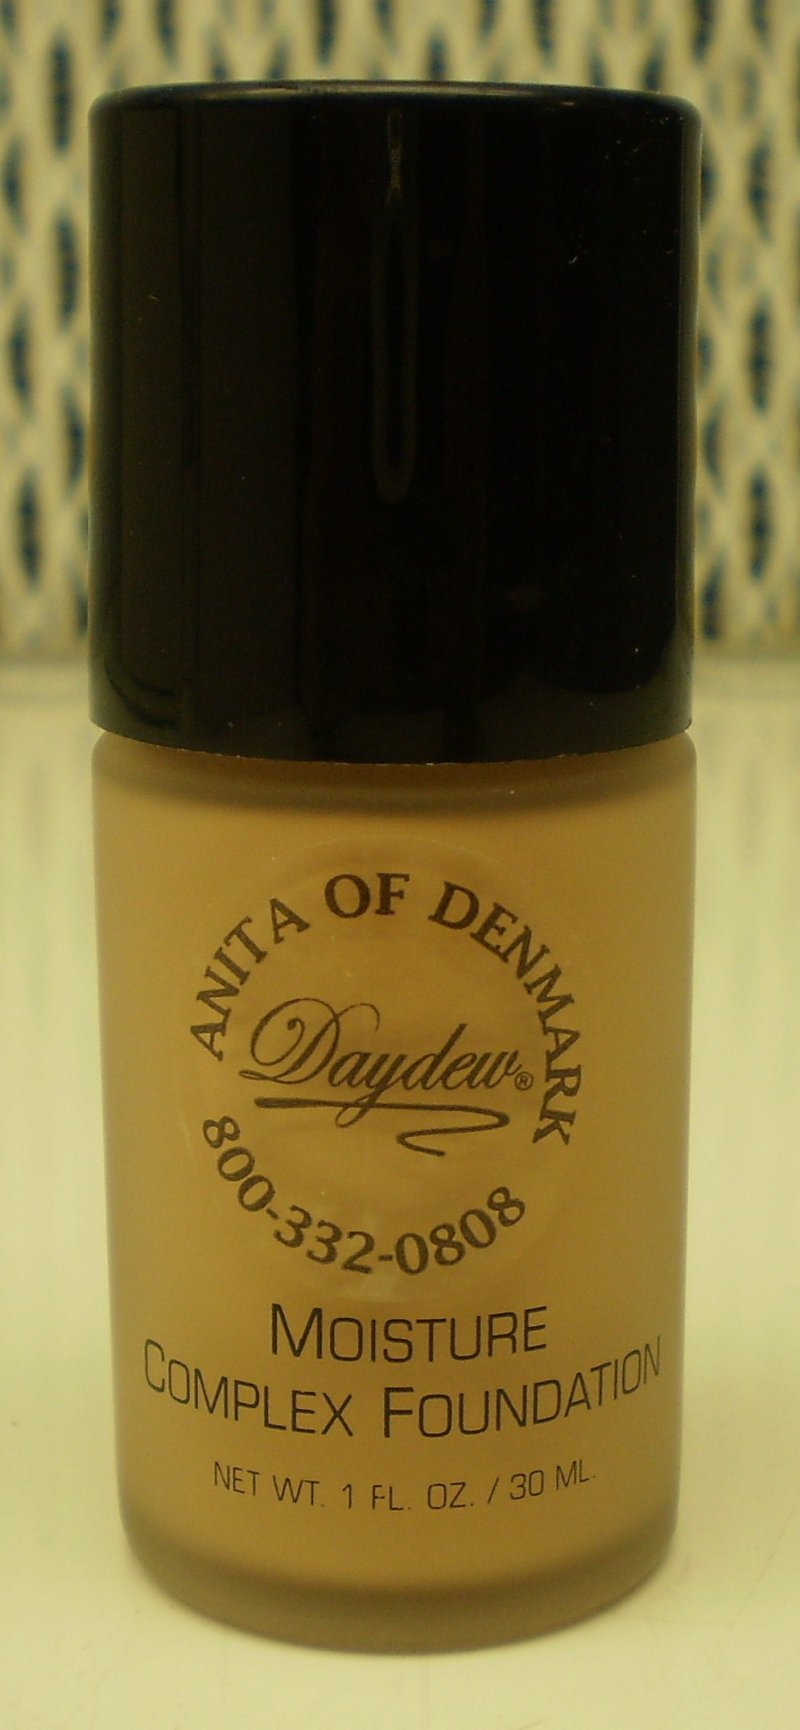 Daydew Custom Blend Moisture Complex Foundation Makeup Creme Rachel 1 oz